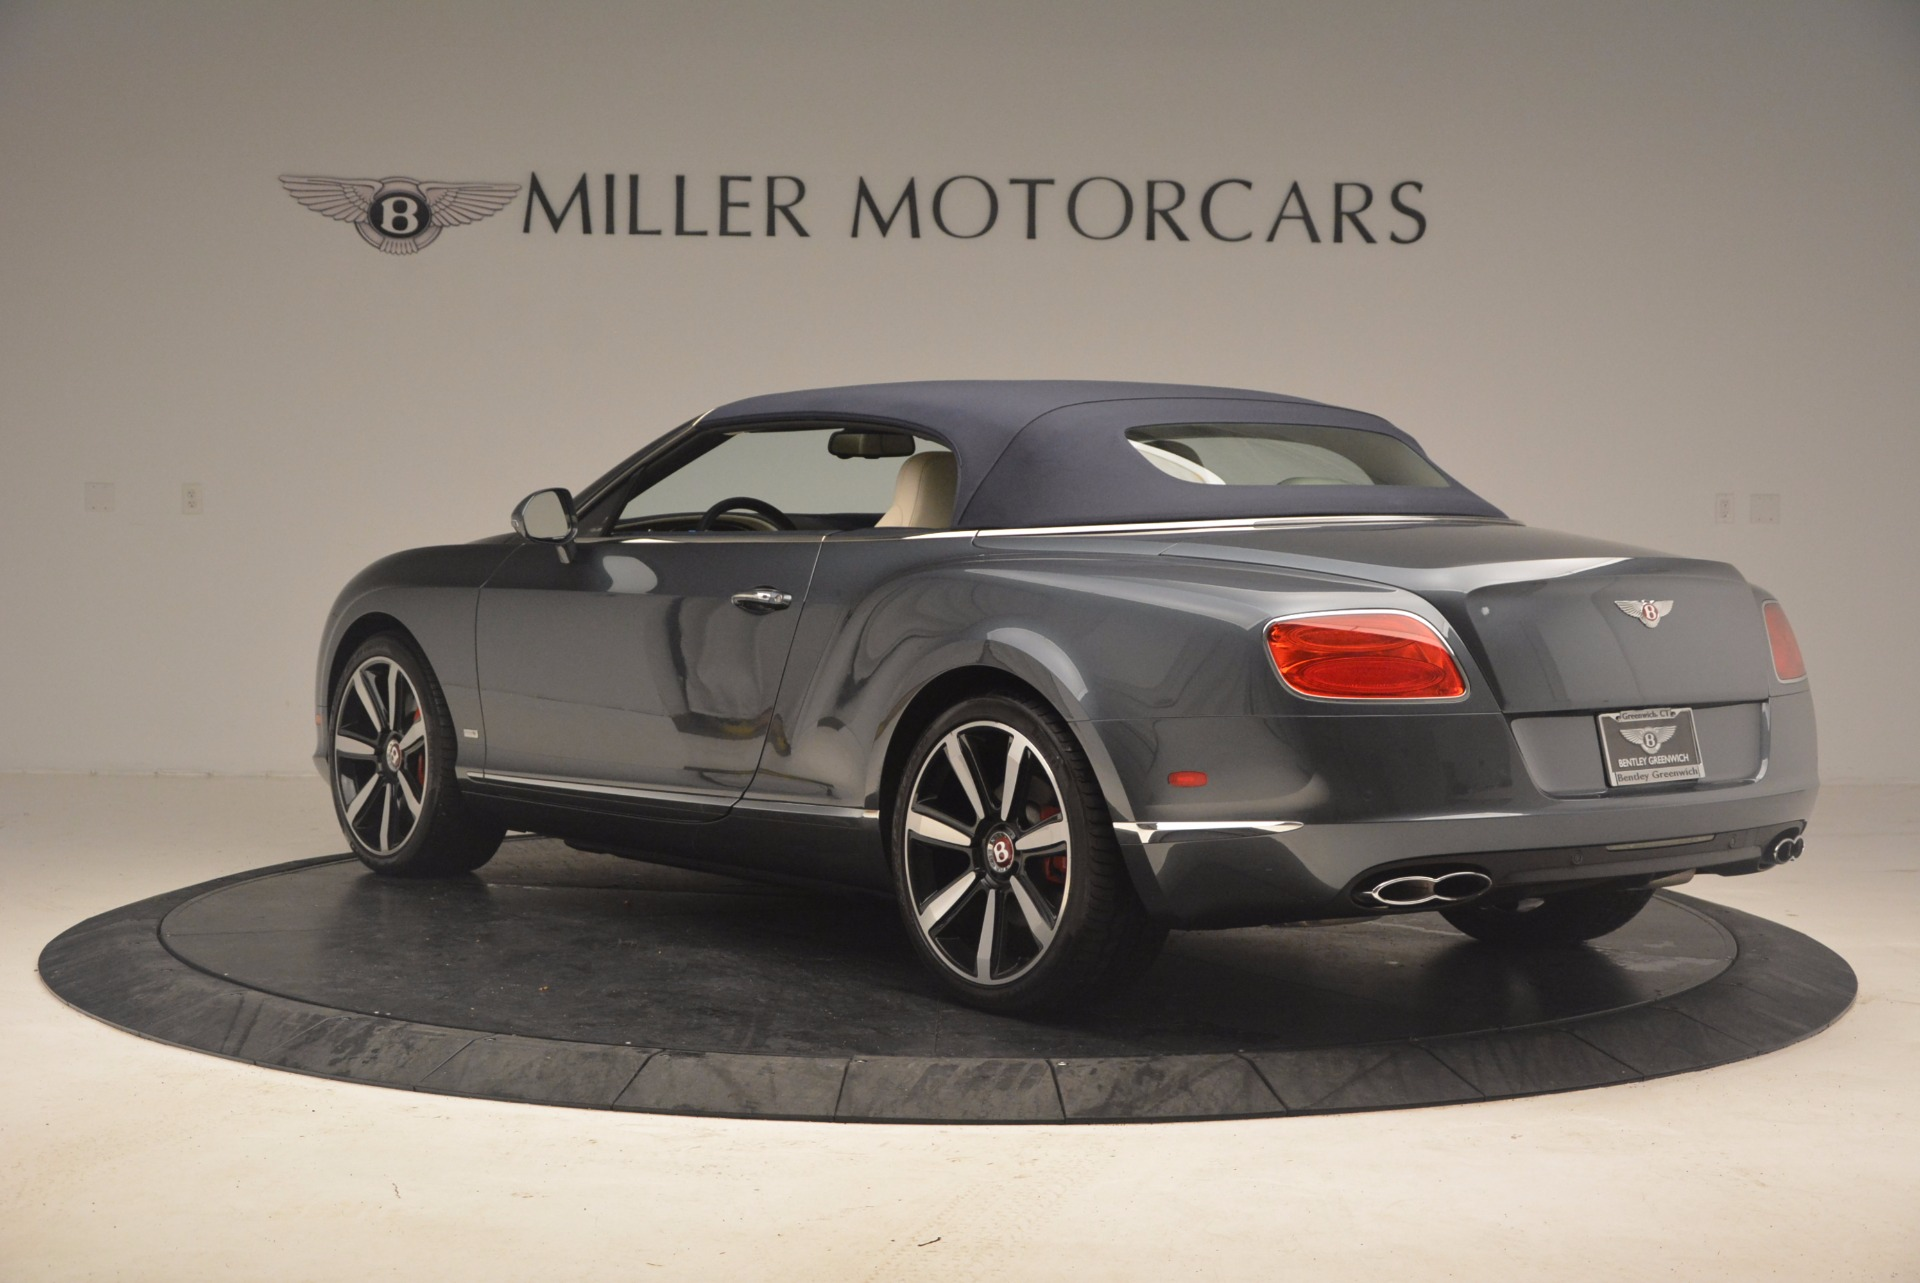 Used 2013 Bentley Continental GT V8 Le Mans Edition, 1 of 48 For Sale In Greenwich, CT. Alfa Romeo of Greenwich, 7226 1288_p17